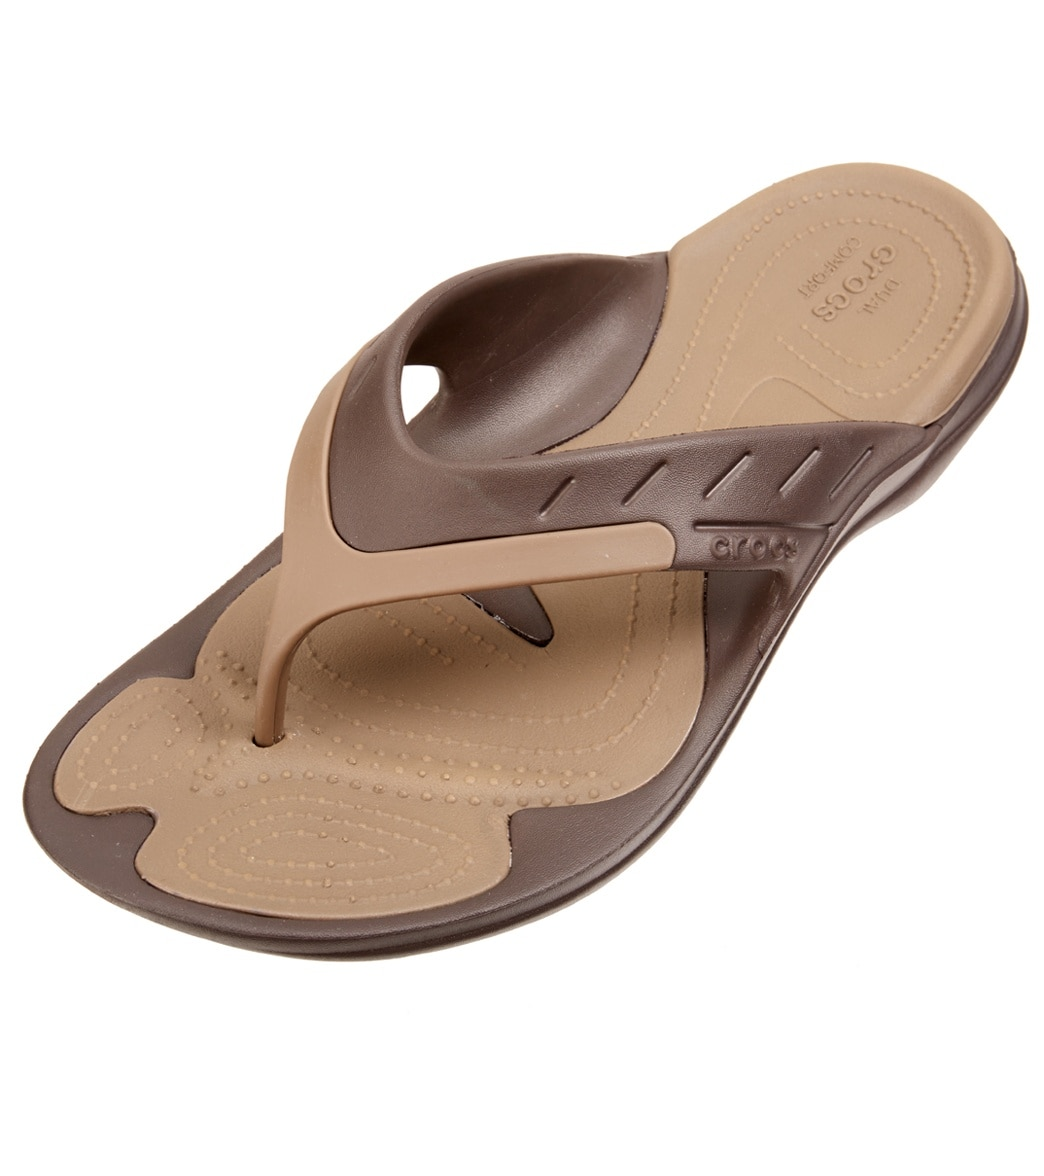 23f2dbd16 Crocs MODI Sport Flip Flop at SwimOutlet.com